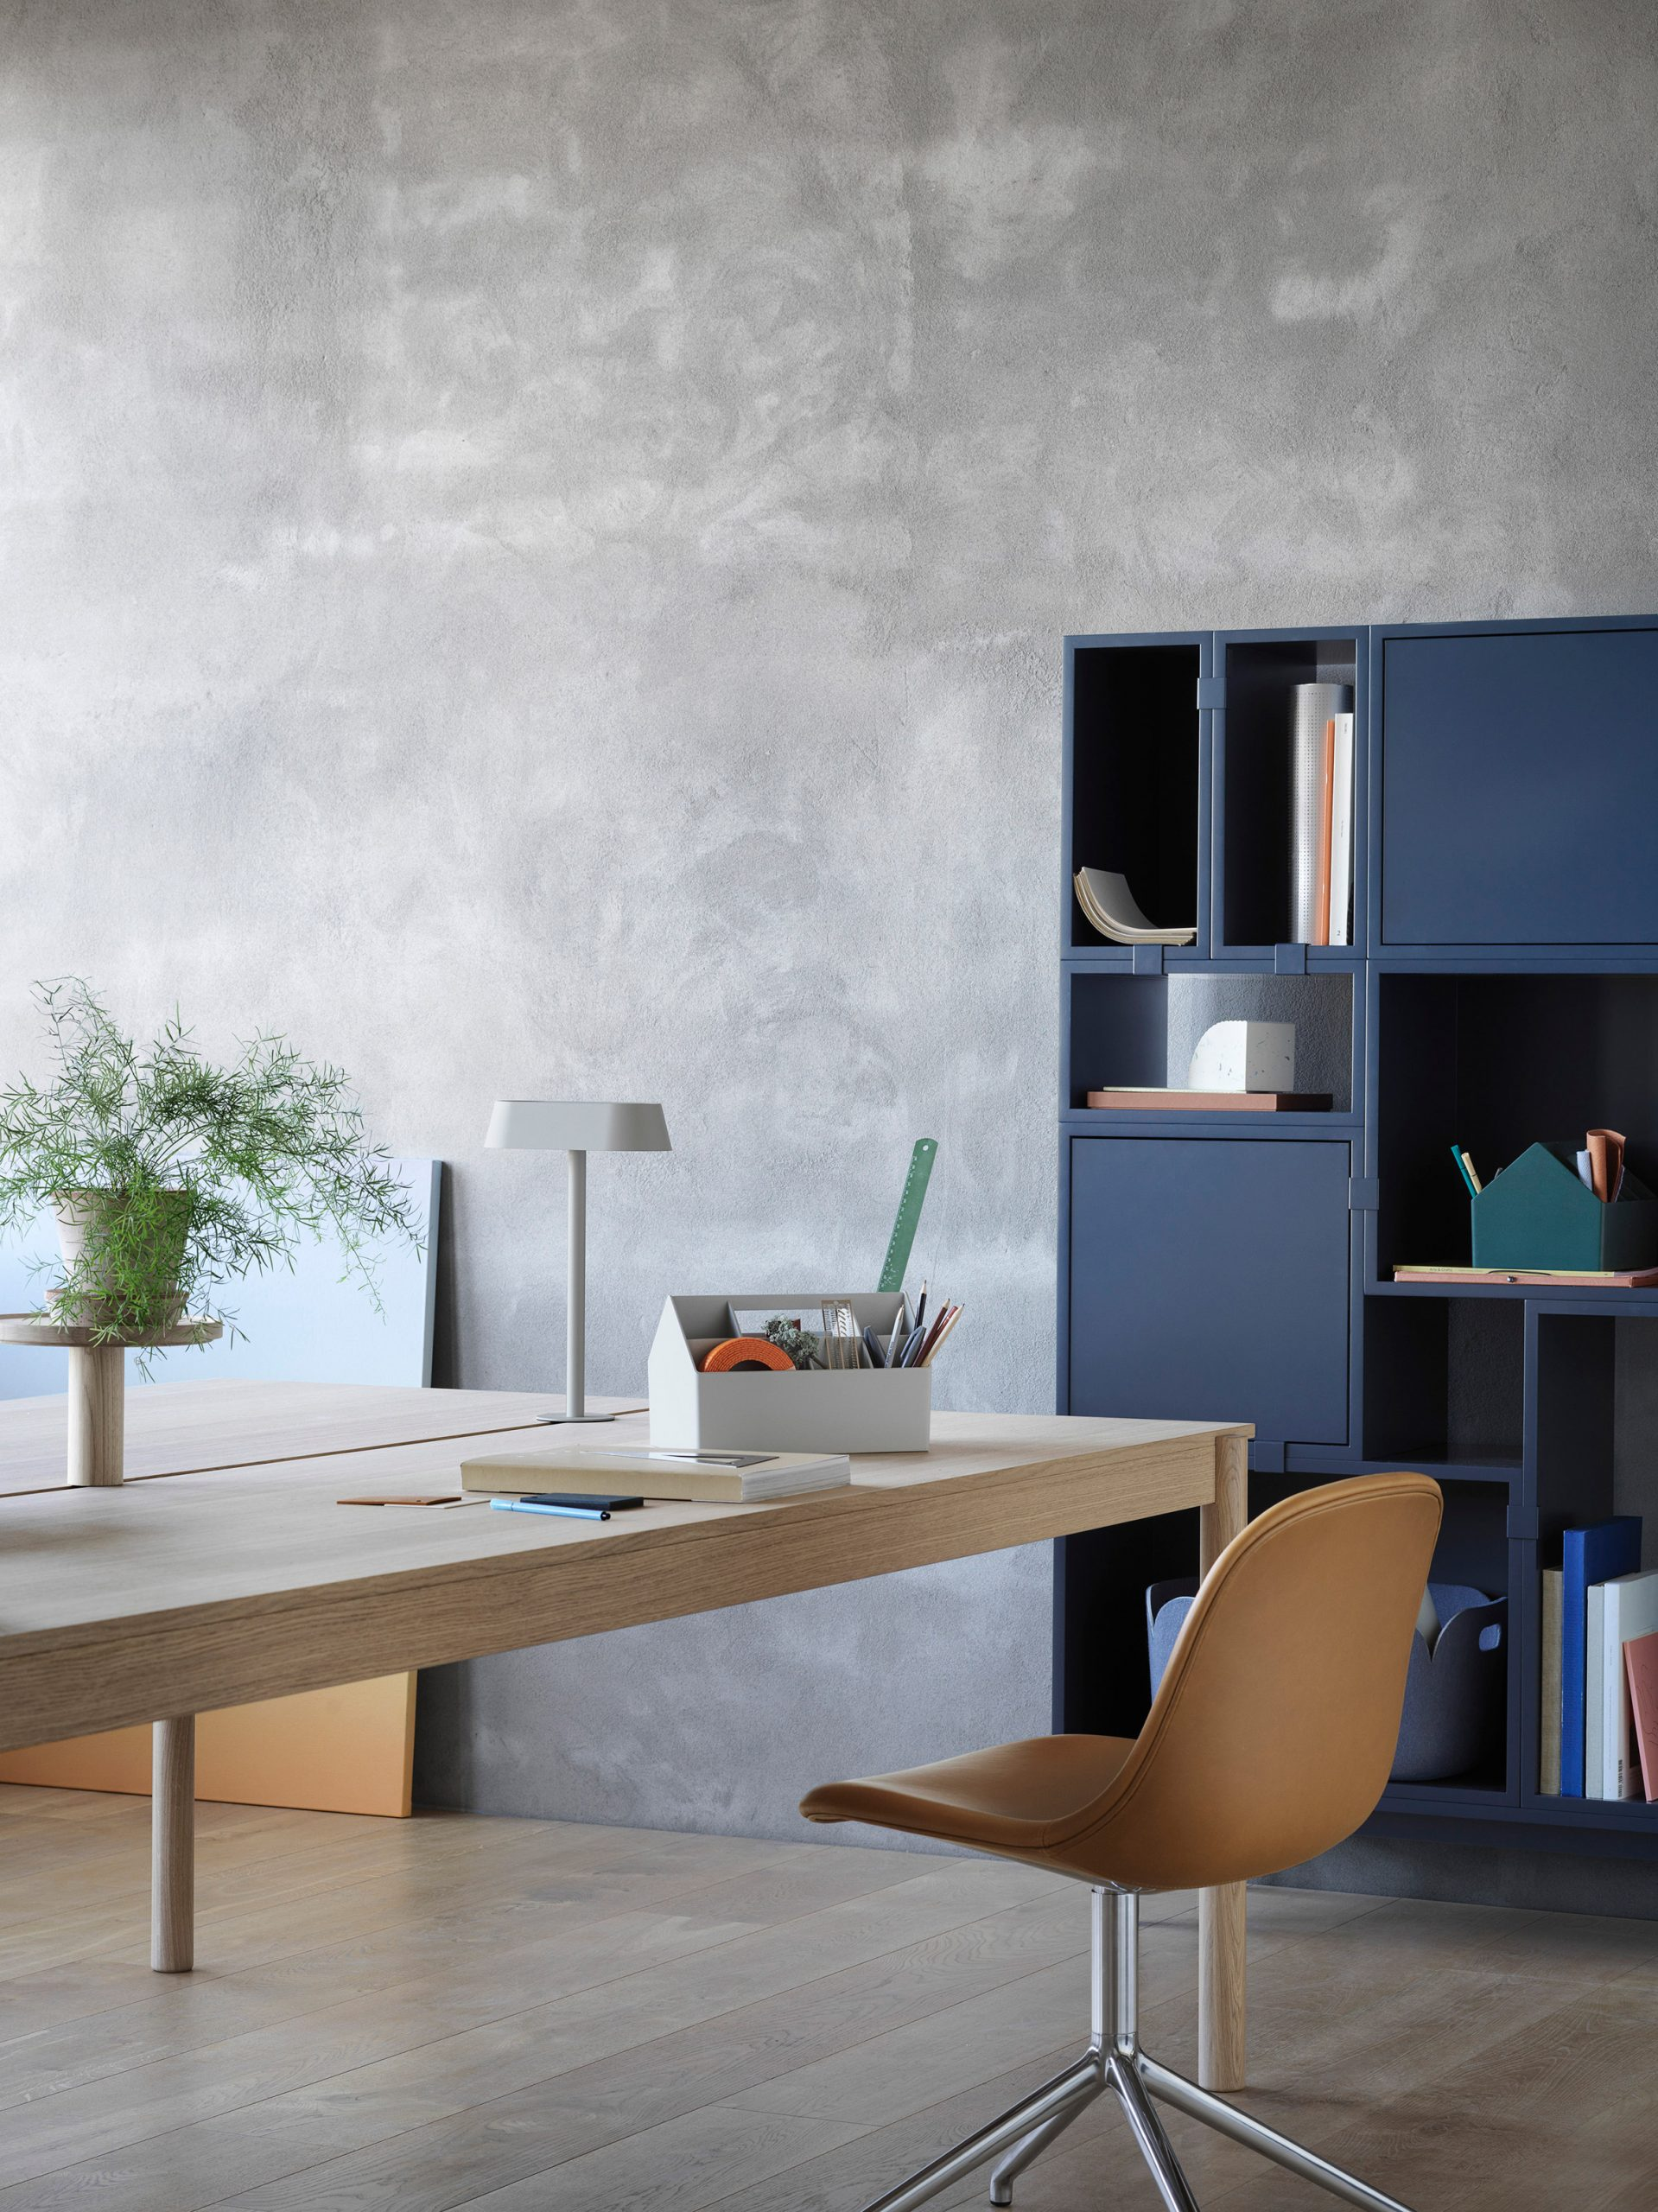 Table and lamp from Thomas Bentzen's The Linear System Series for Muuto